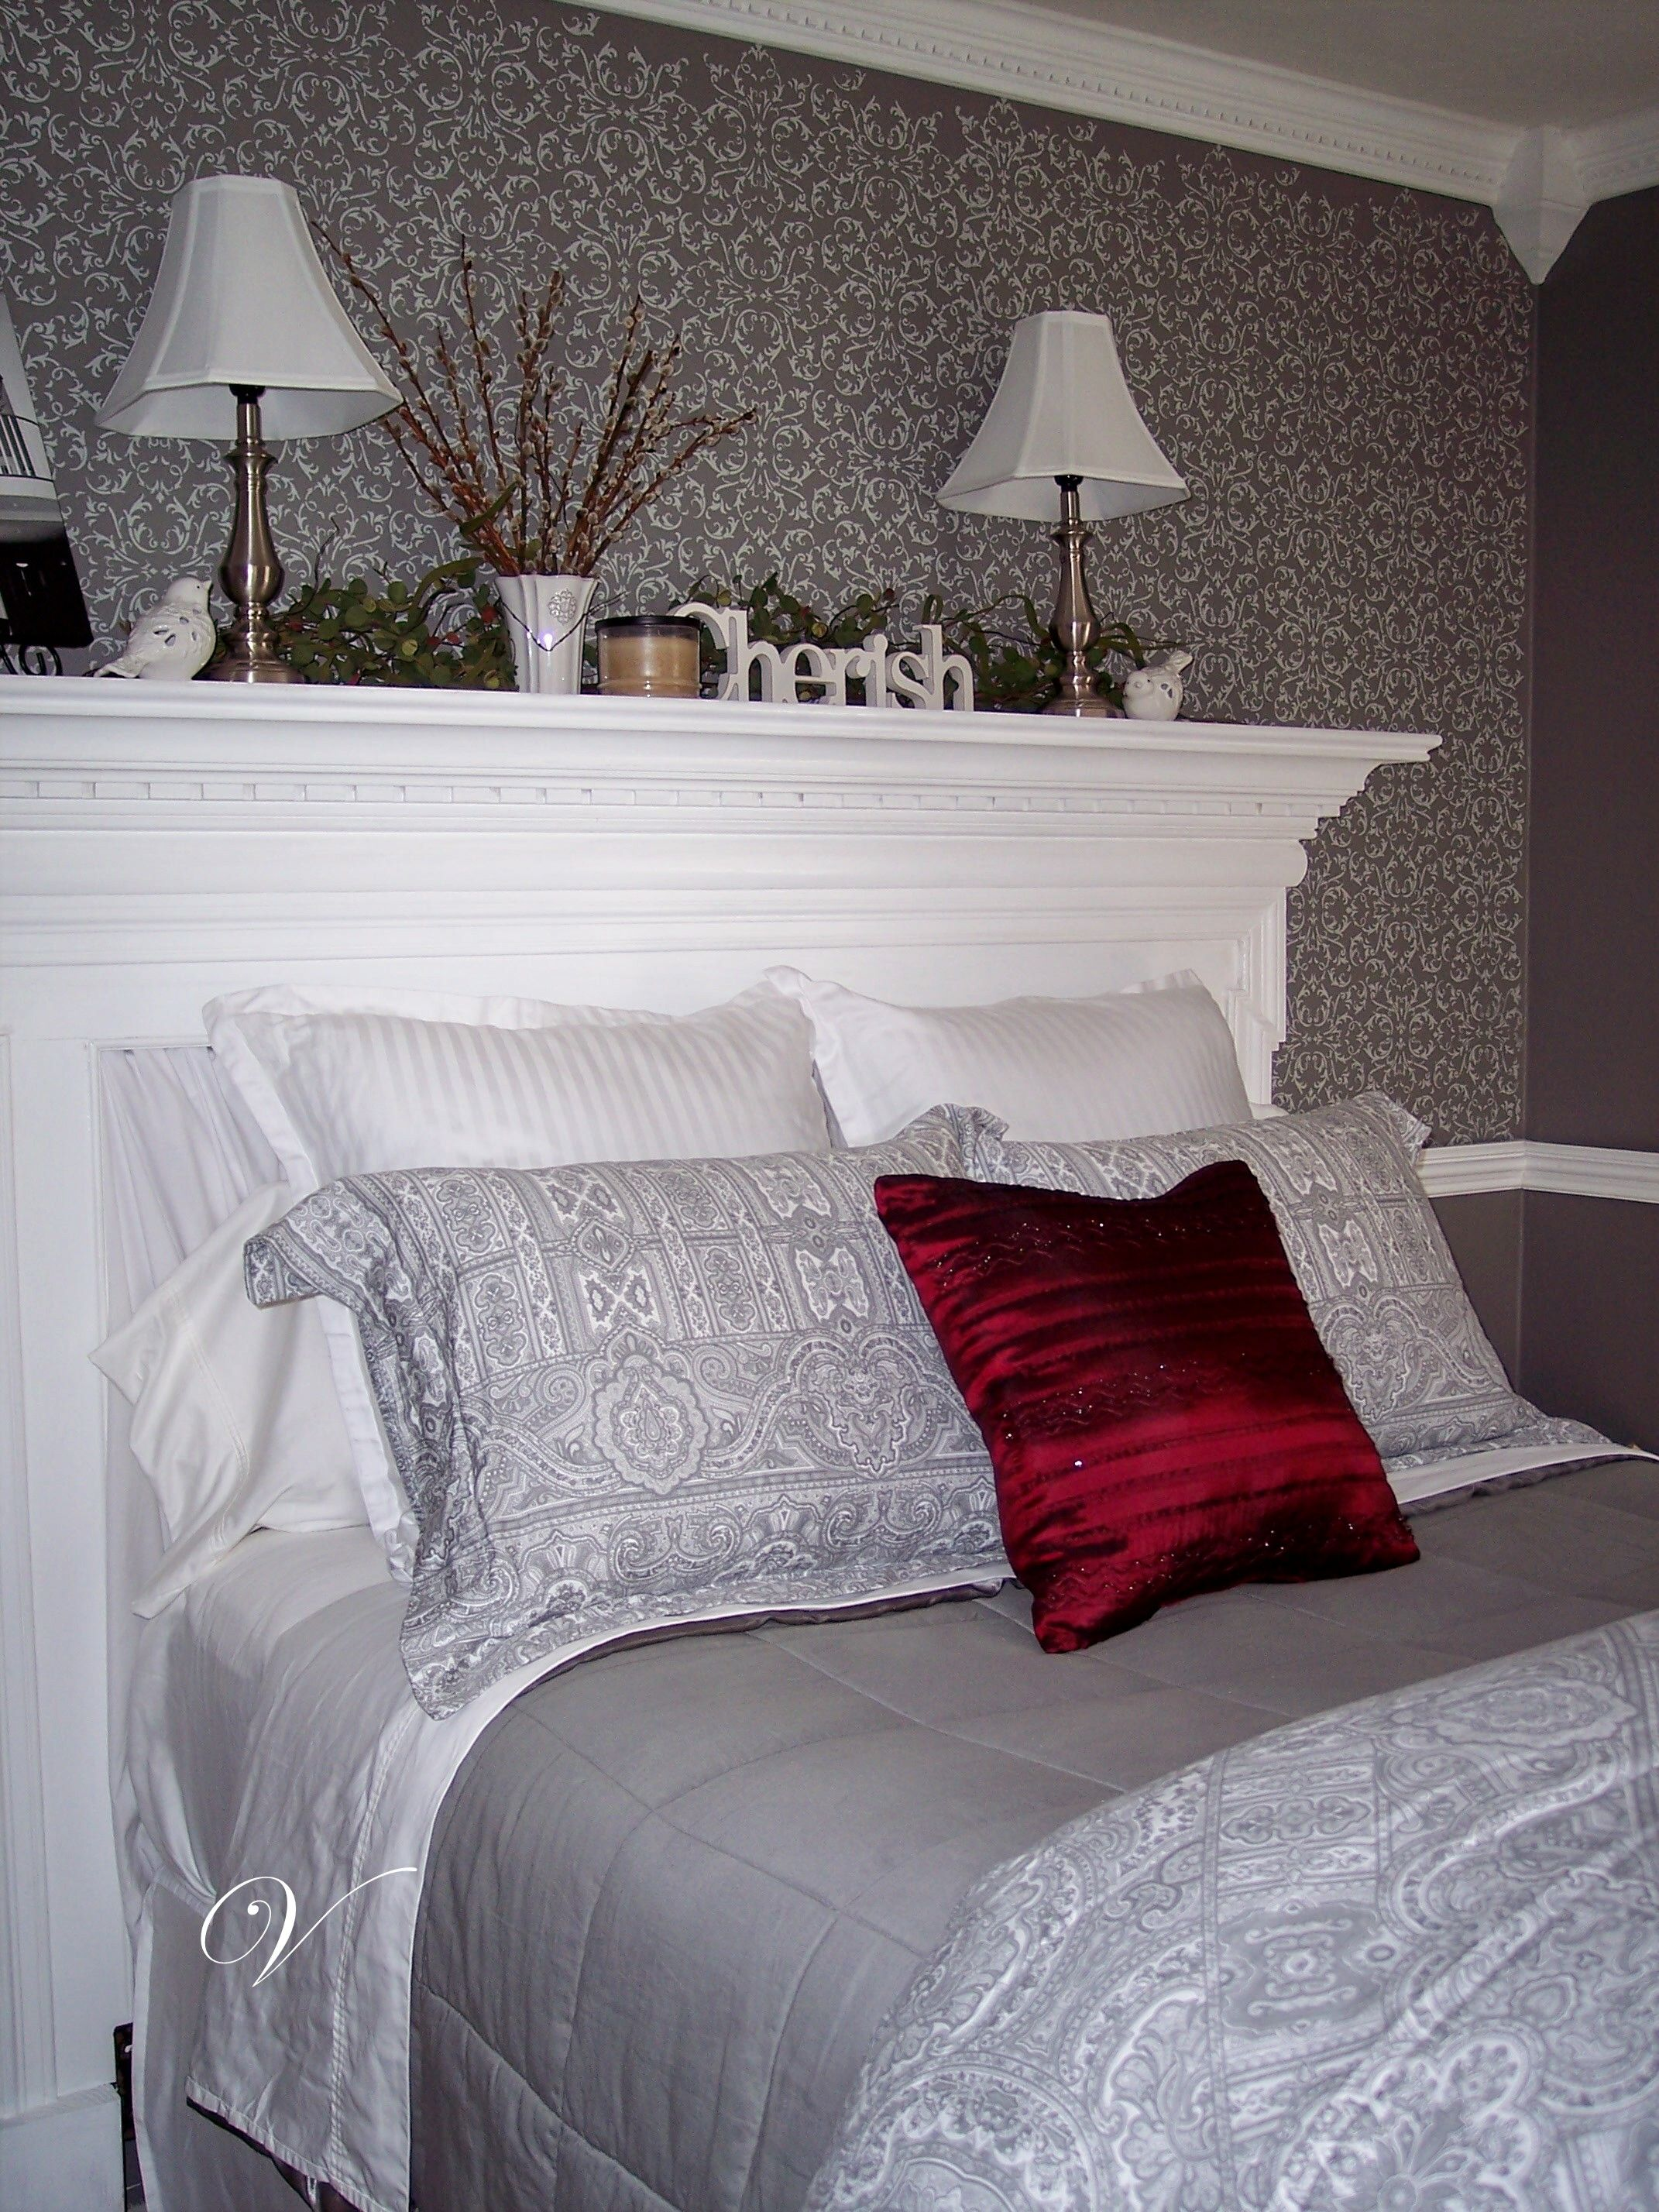 Mantle headboard love it For the Home Pinterest Bed